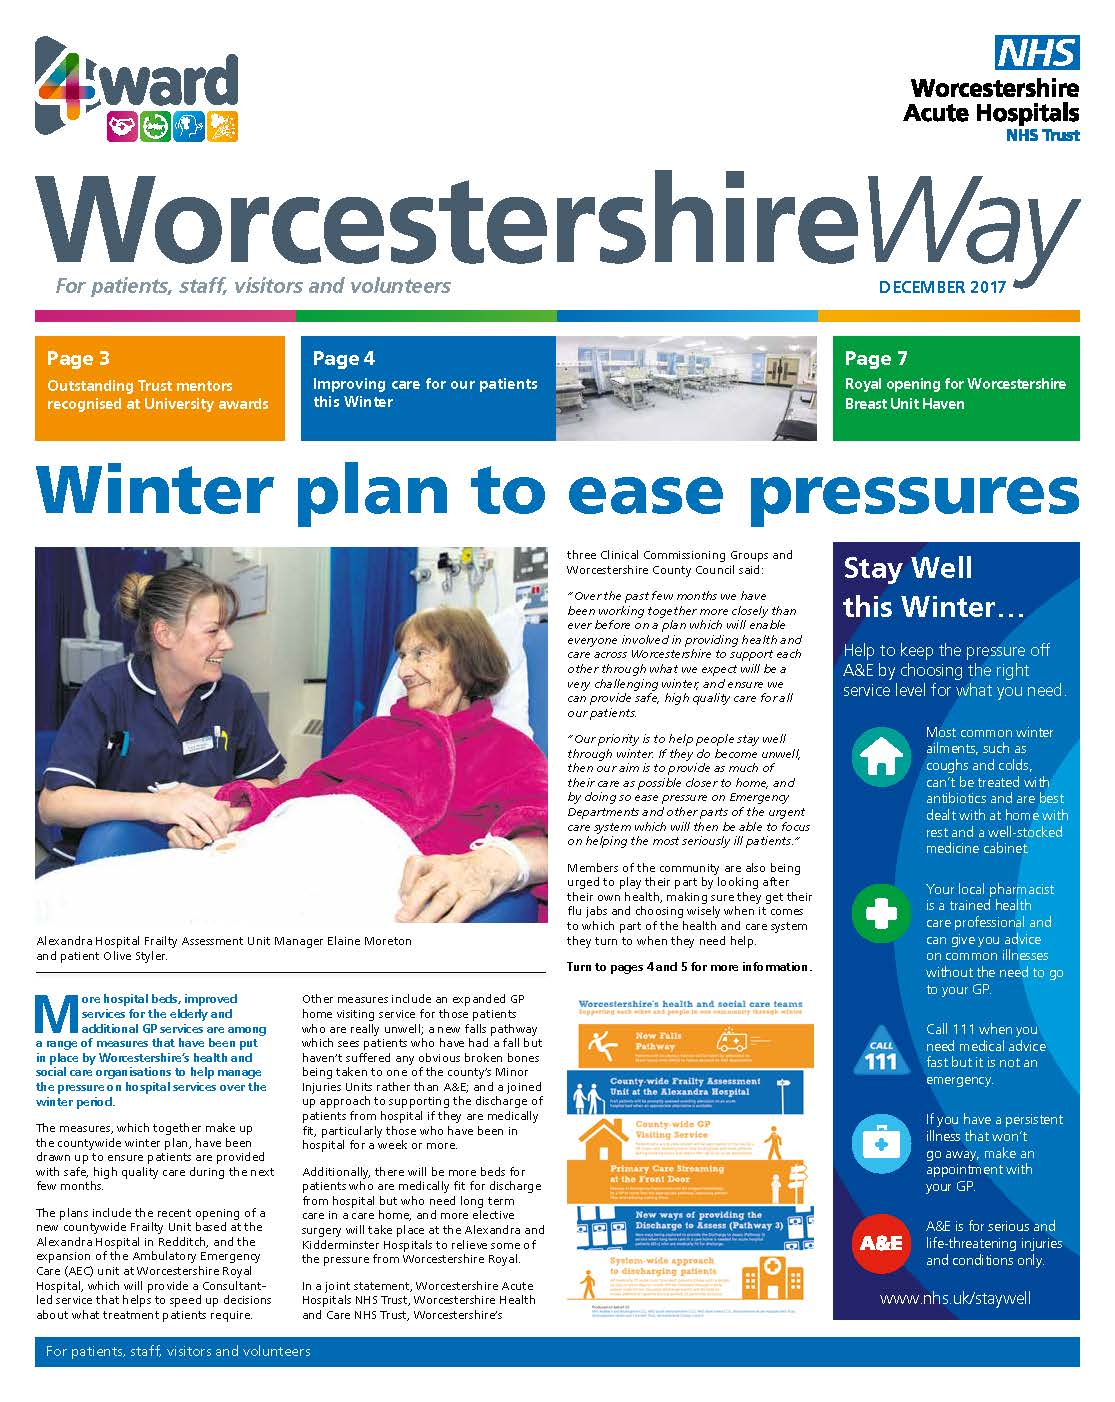 Worcestershire Way Dec 2017 final web 2 Page 1